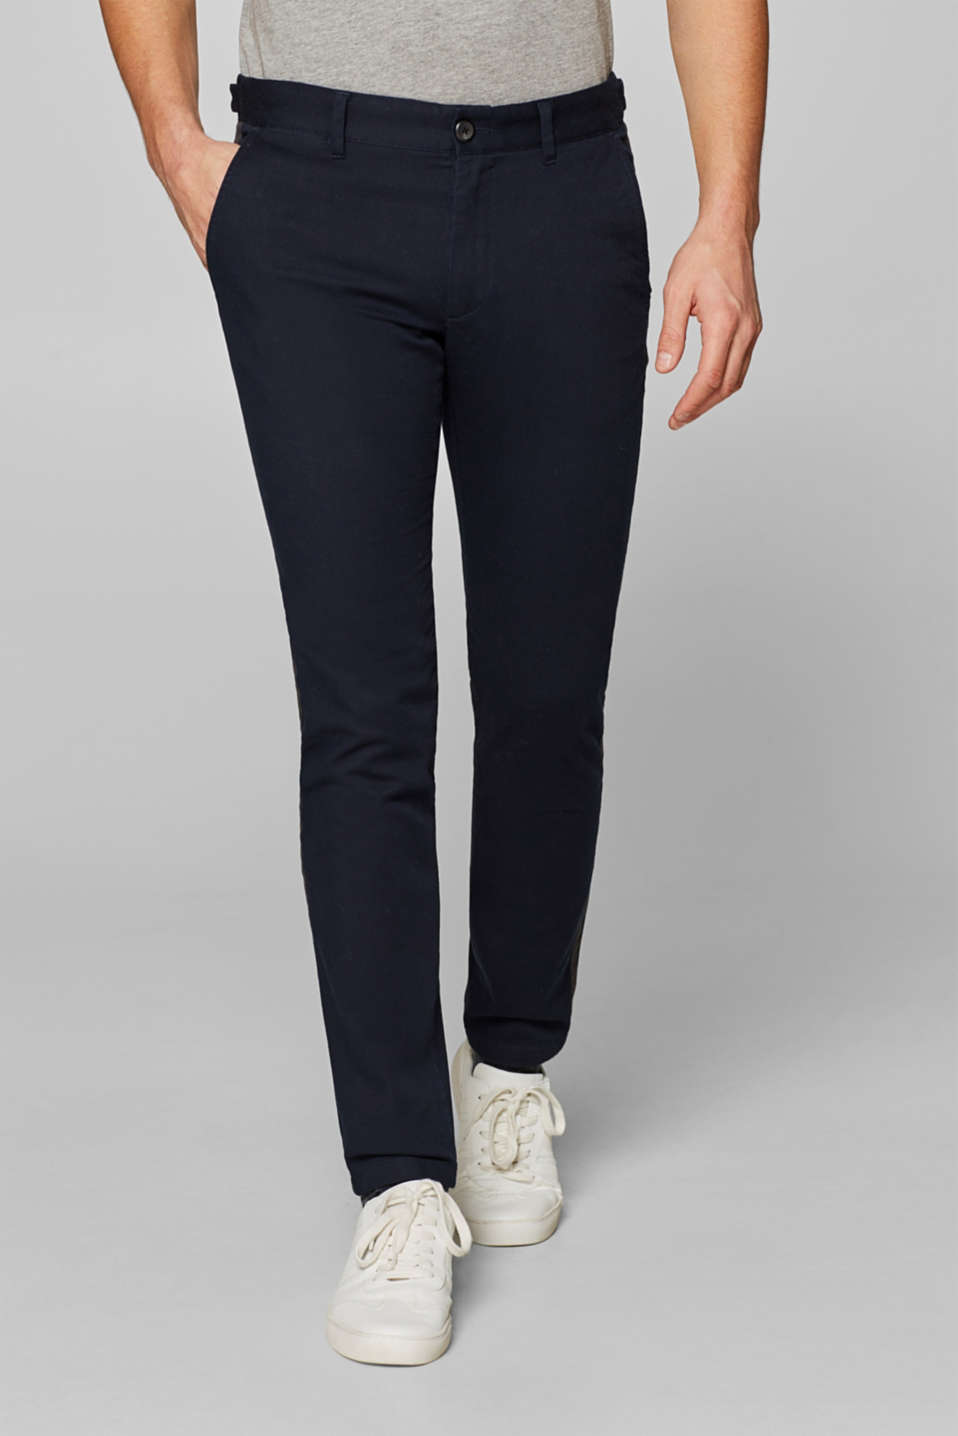 Esprit - Comfy and stretchy textured trousers